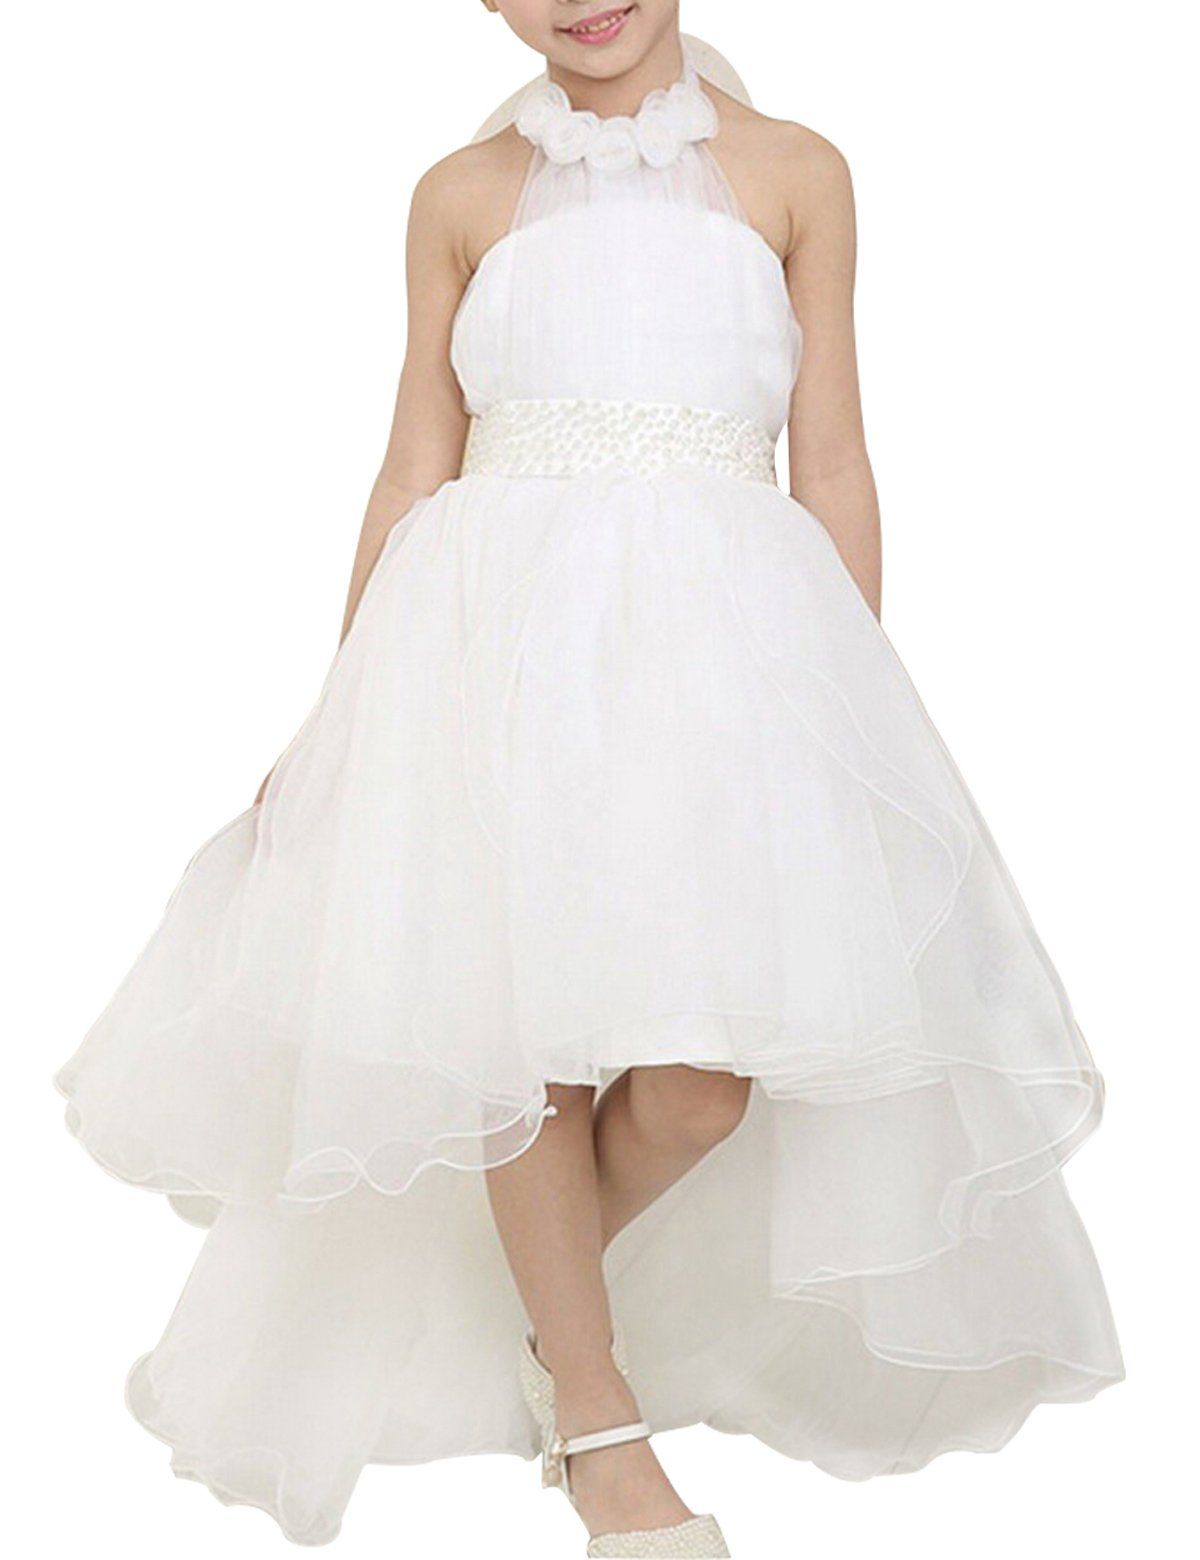 Nnjxd Flowers Wedding Party Tulle Princess Sleeveless Strapless Long Tail Dress Size 7 8 Years White Cotton Lace Blending Table Means Age Ranges